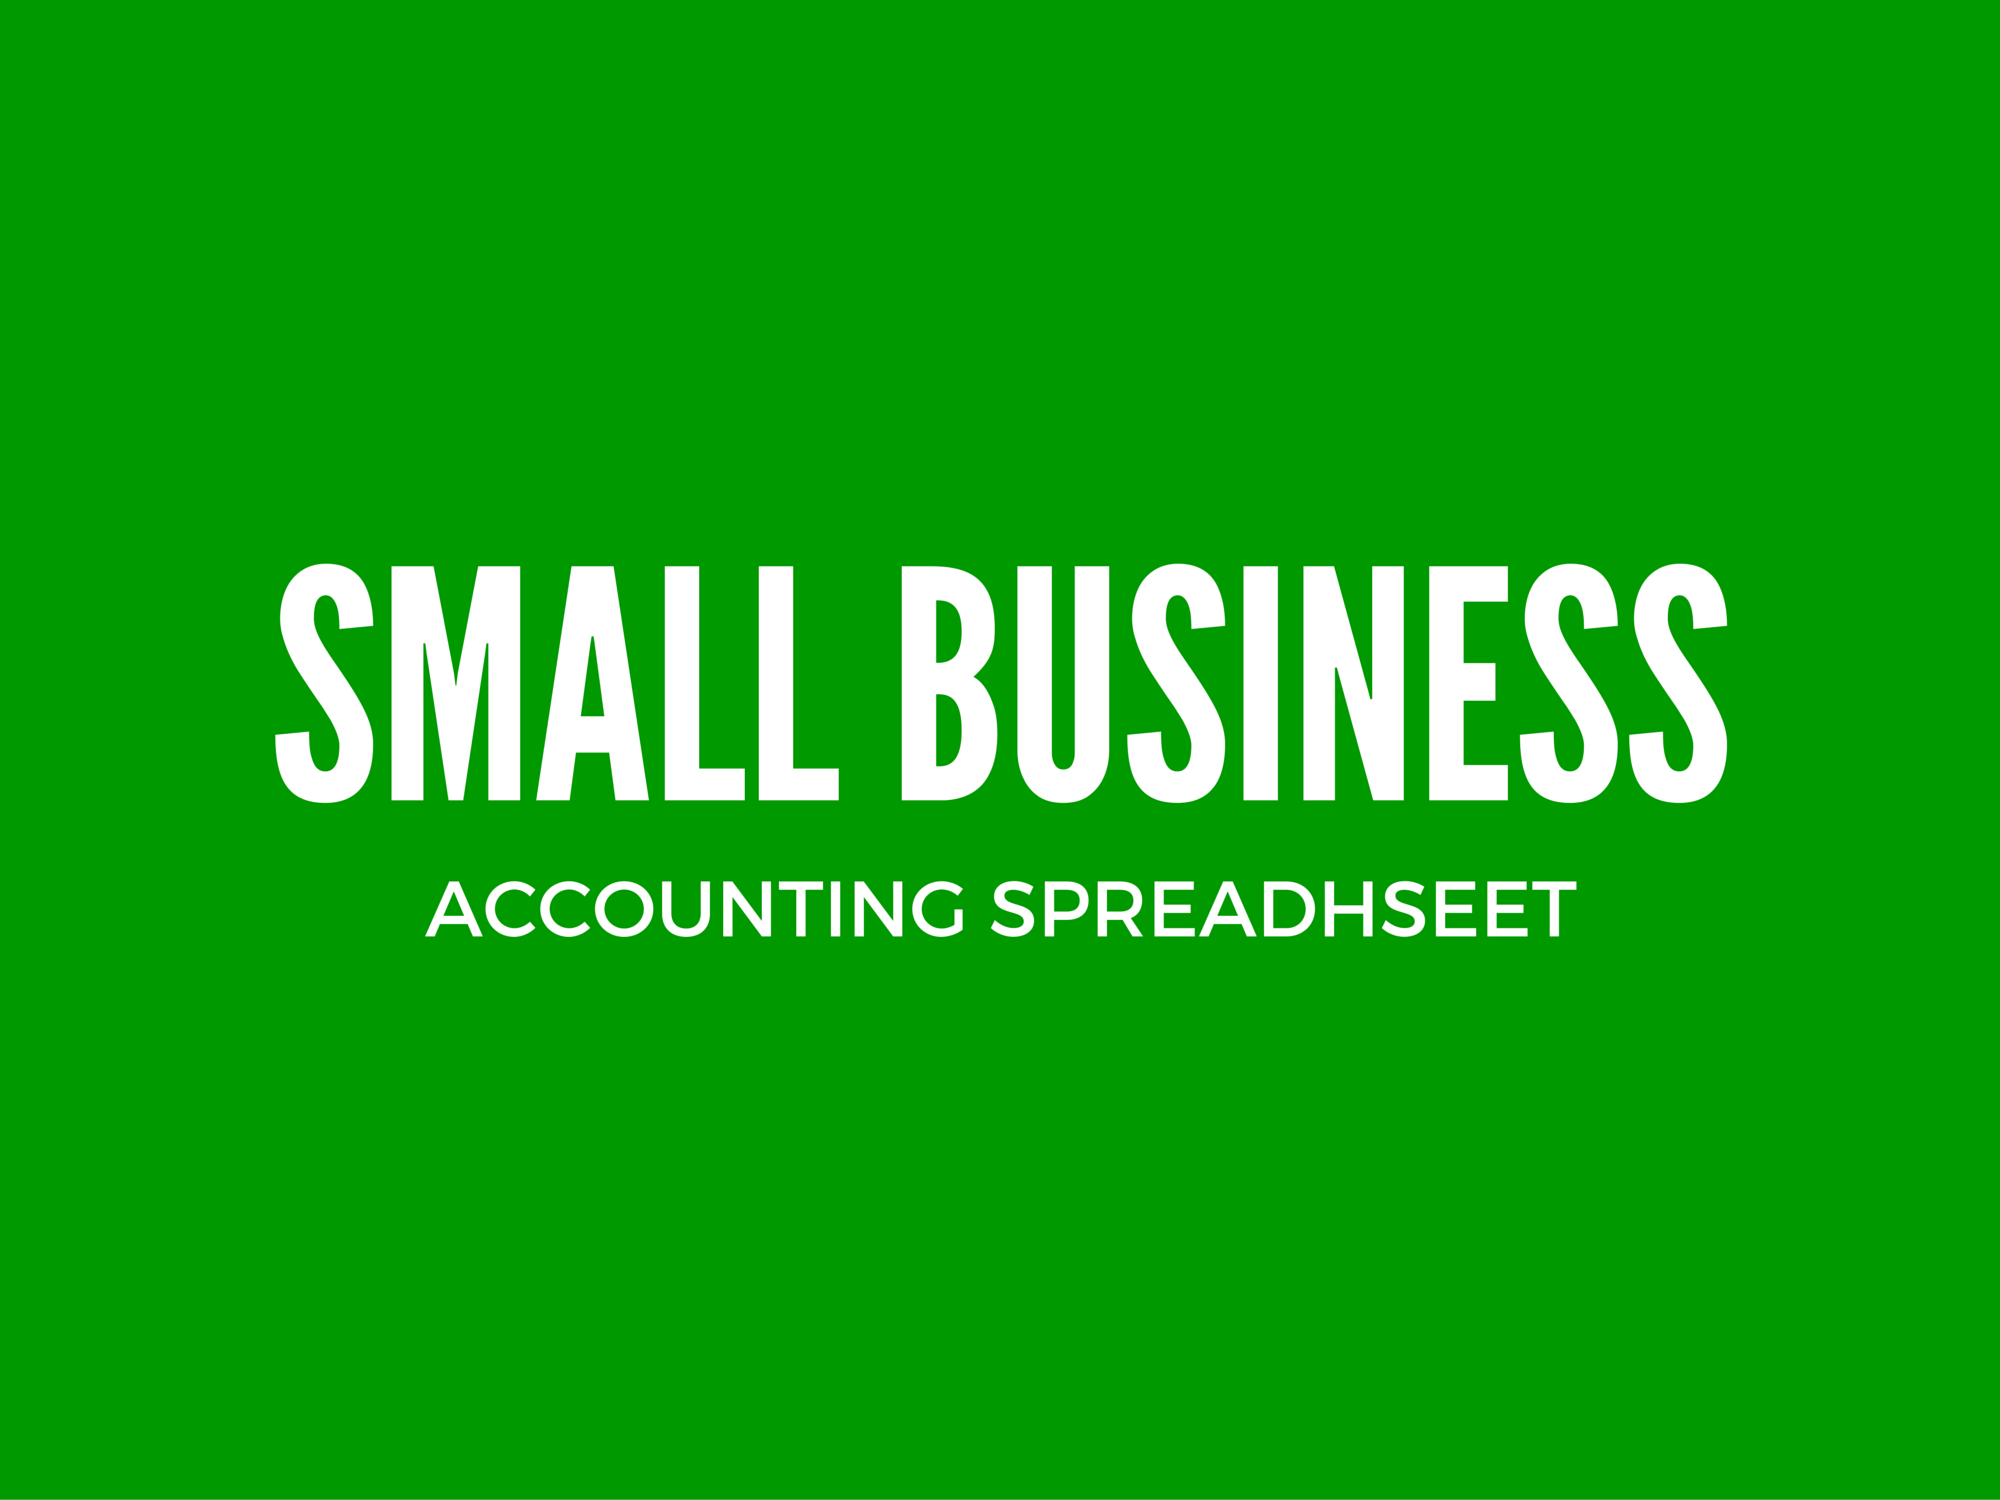 Income And Expenditure Spreadsheet Template Regarding Income And Expenditure Template For Small Business